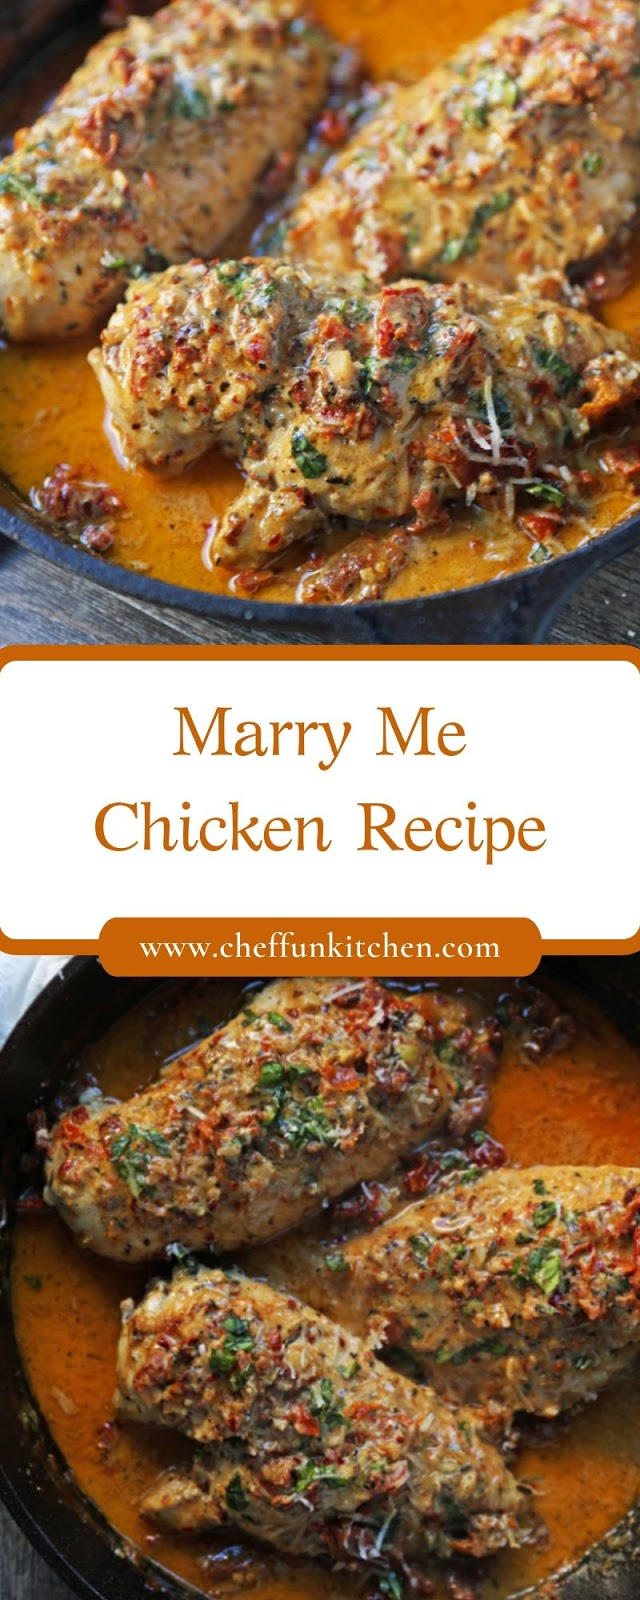 Marry Me Chicken Recipe